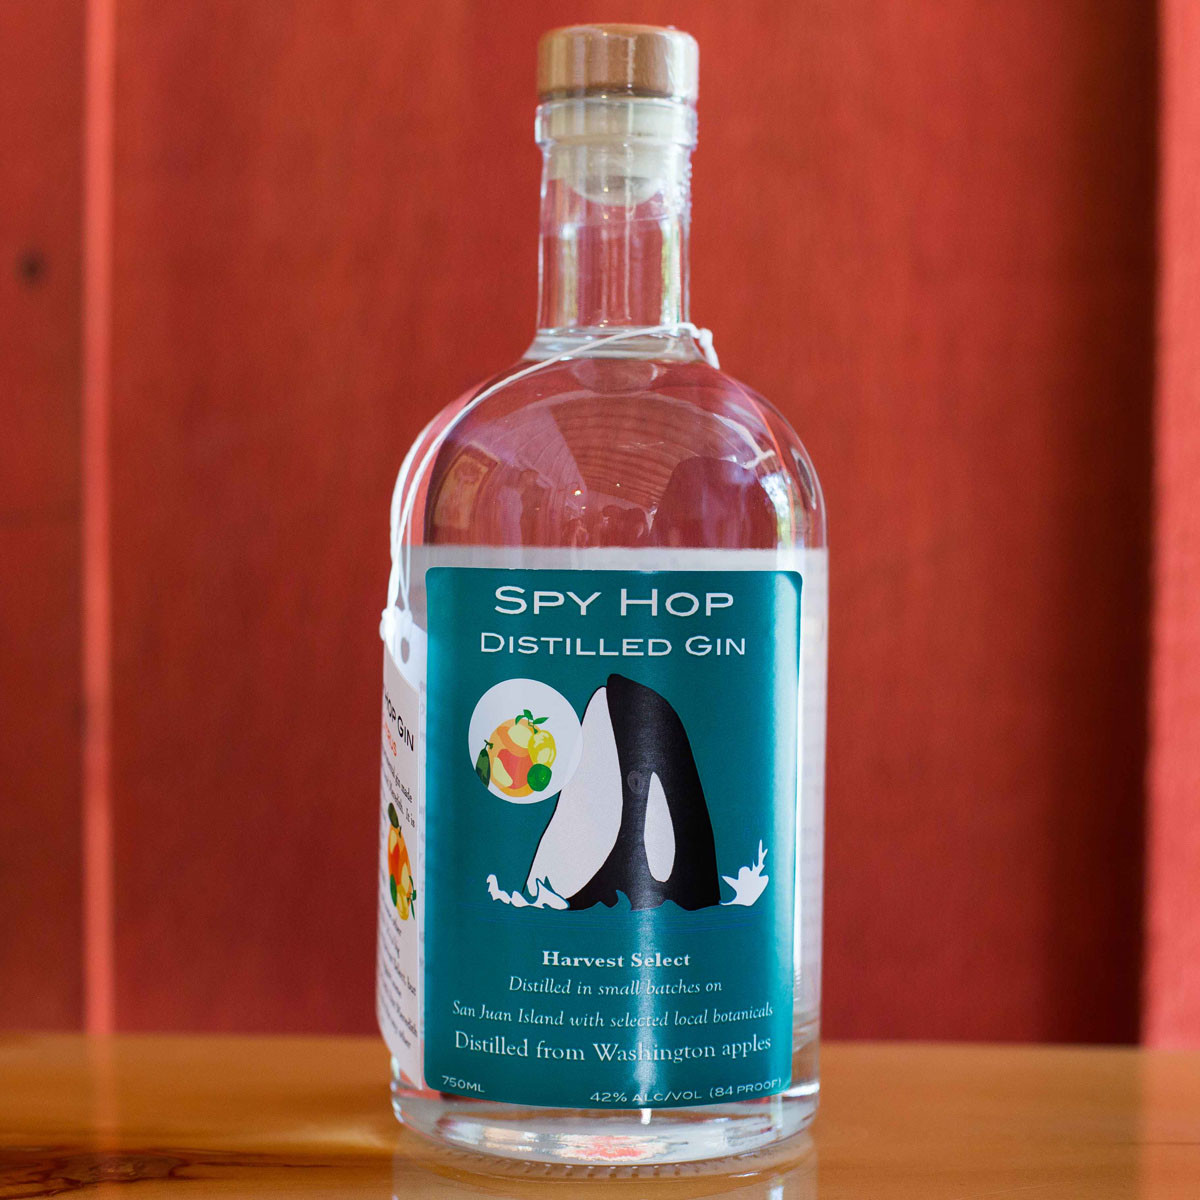 San Juan Island Distilley Spy Hop Distilled Gin Harvest Select Citrus